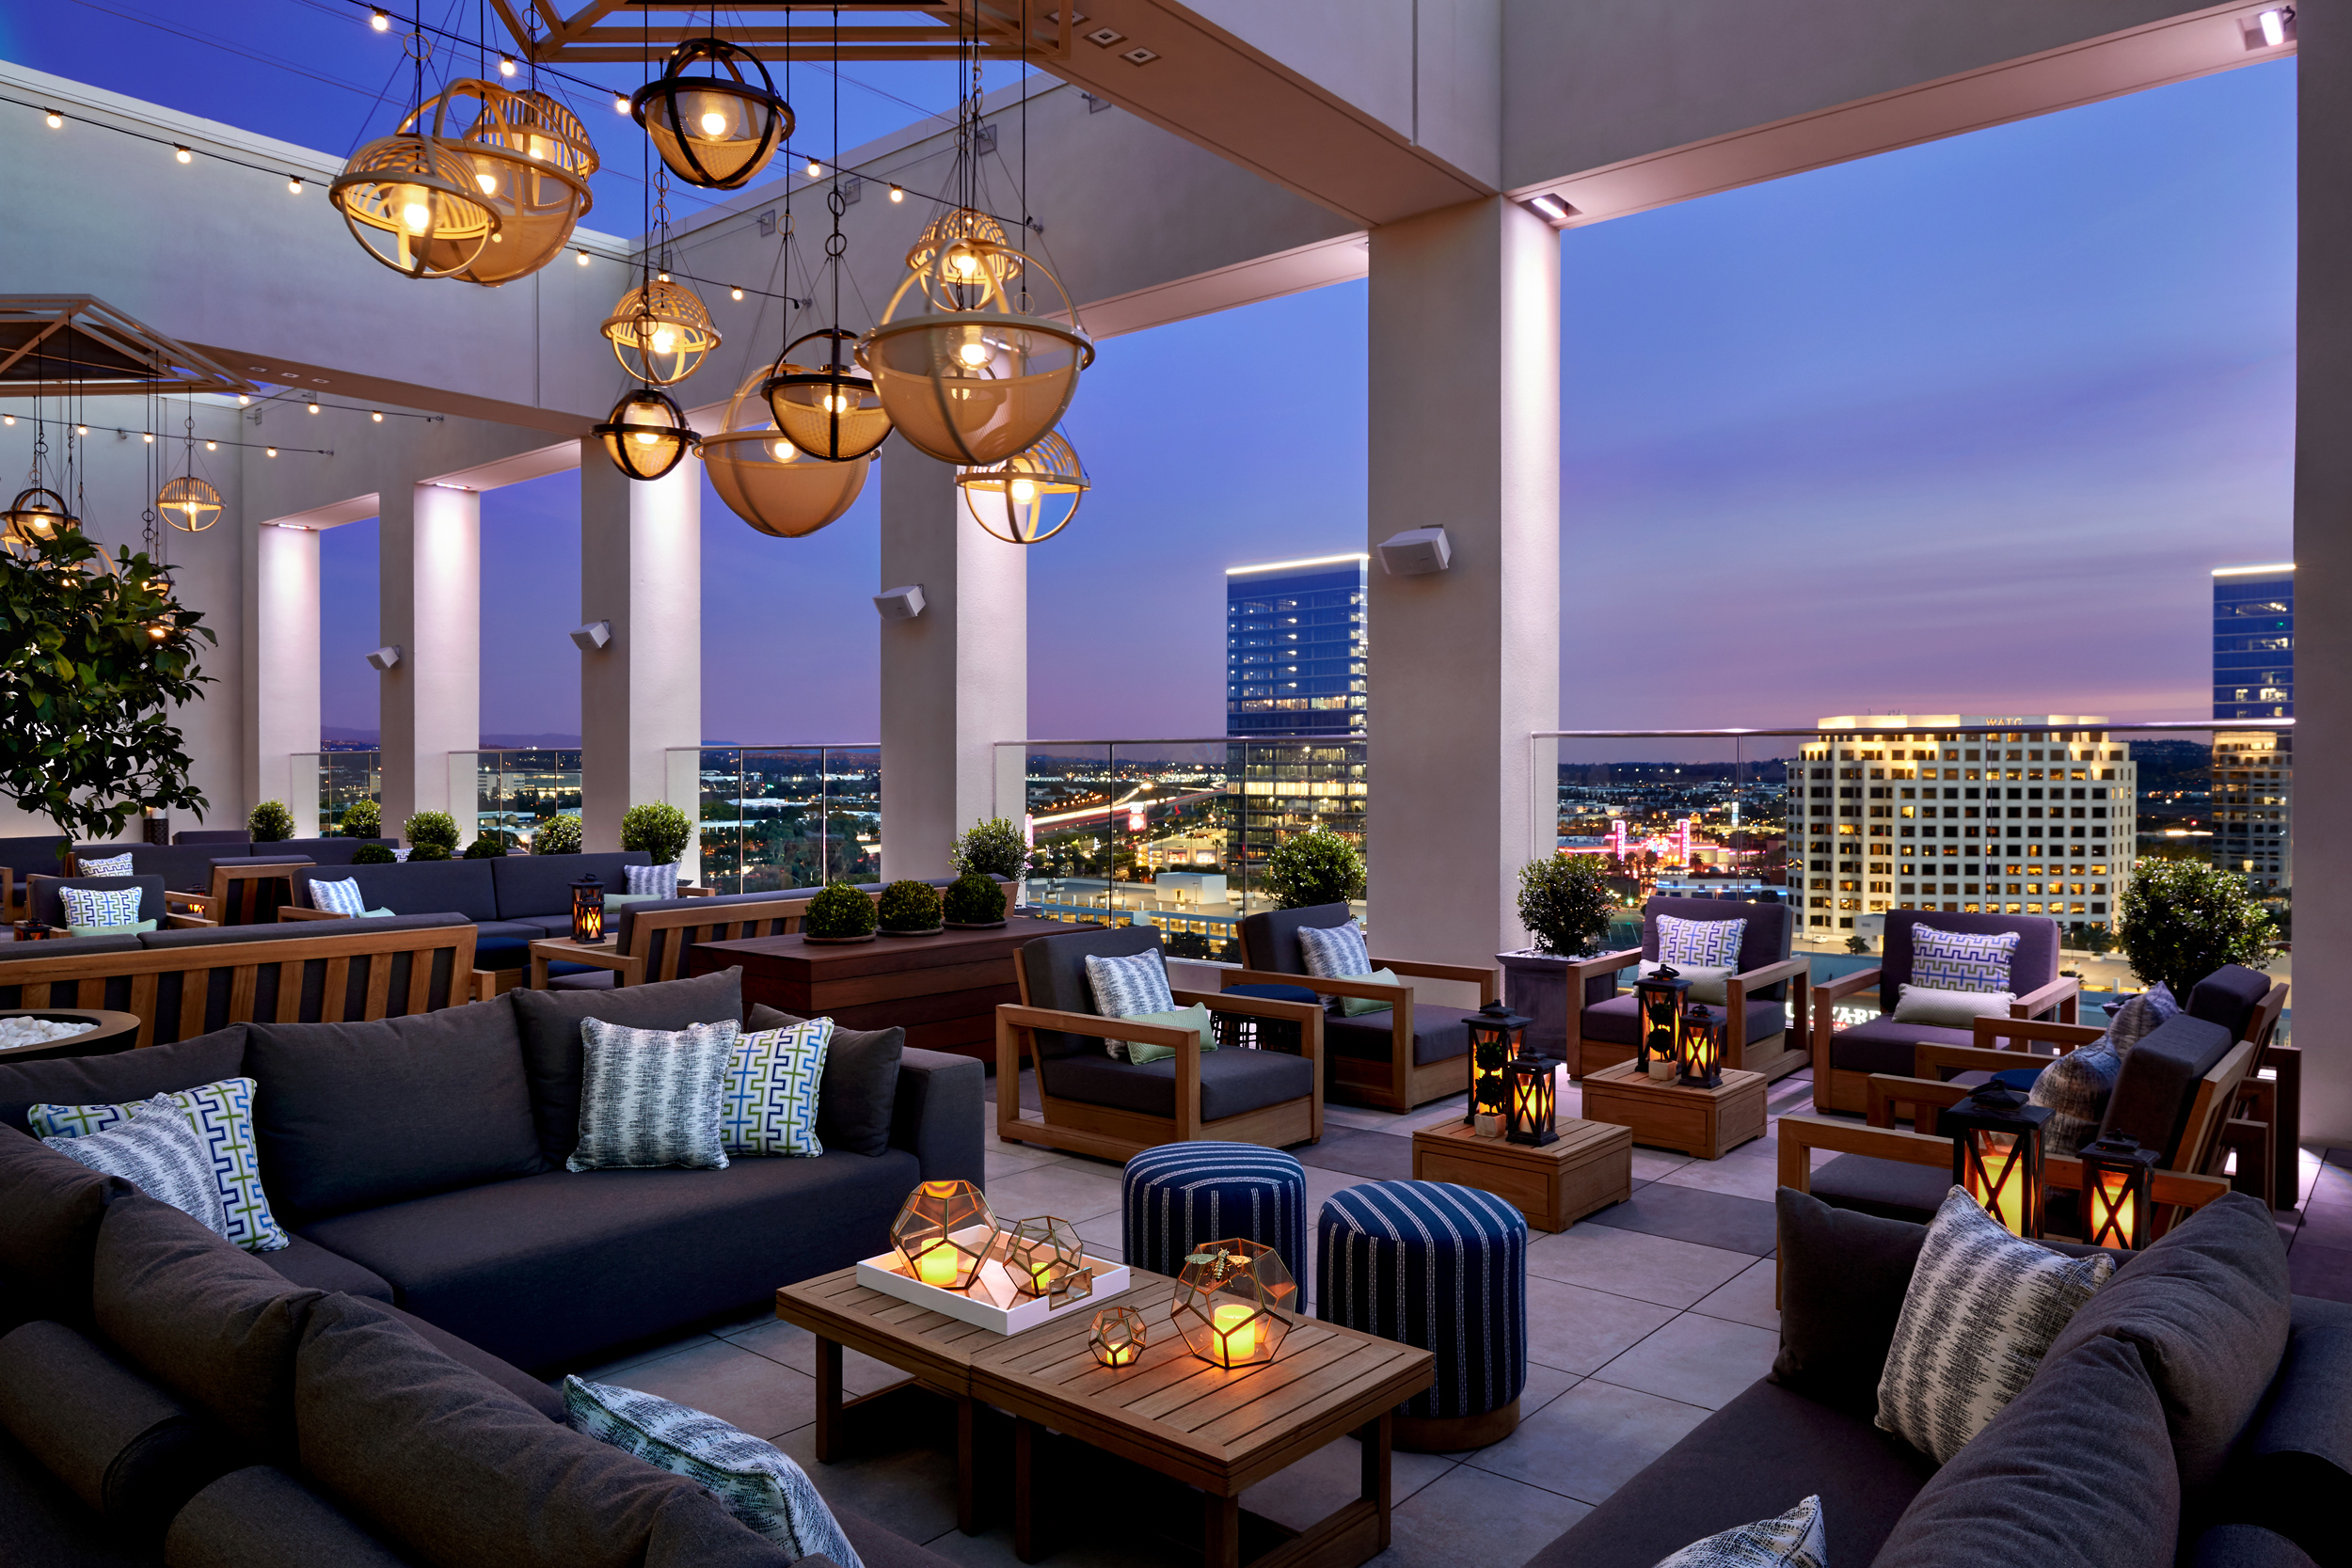 Honey Is The Theme At Marriott Irvine Spectrums New Rooftop Bar And